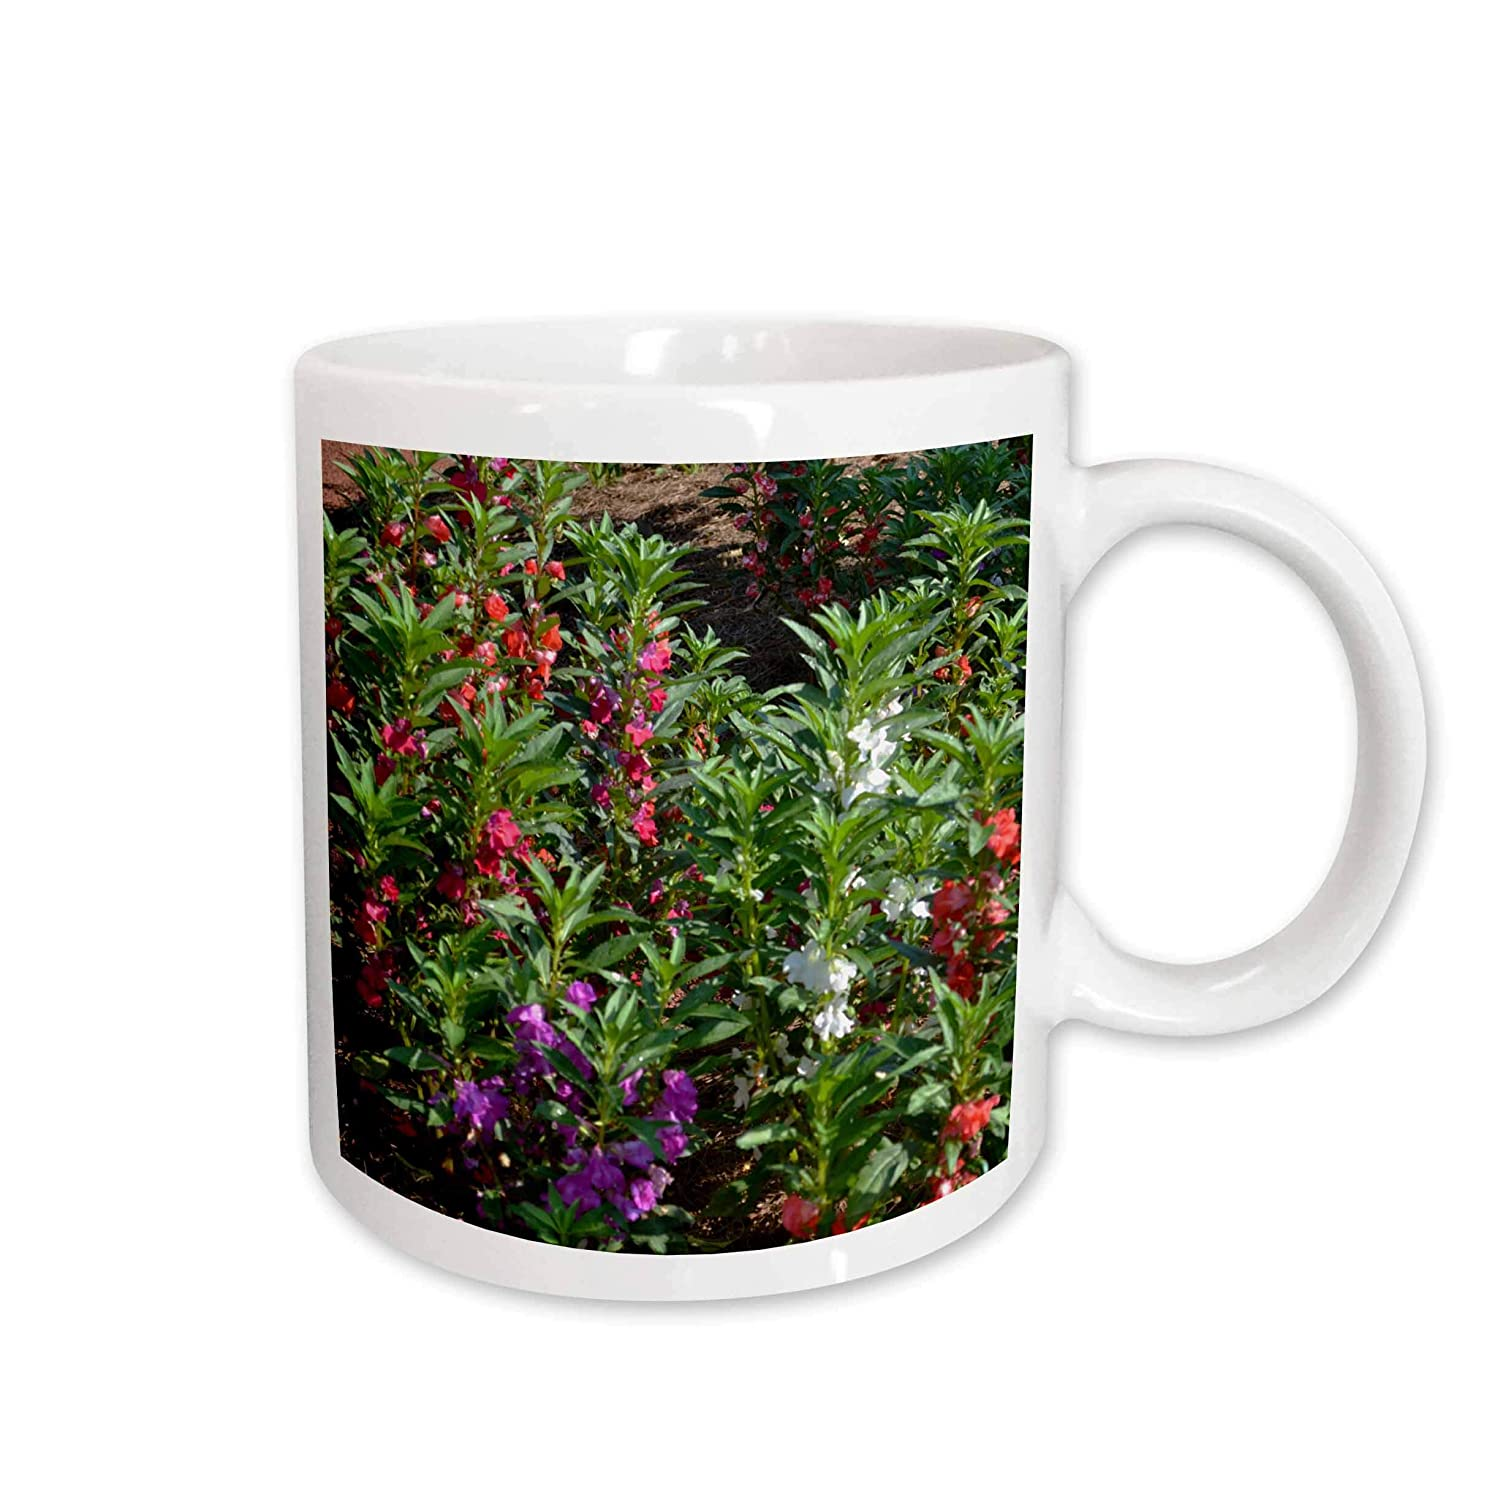 Buy 3drose Colorful Snapdragons In The Garden Ceramic Mug 15 Ounce Online At Low Prices In India Amazon In